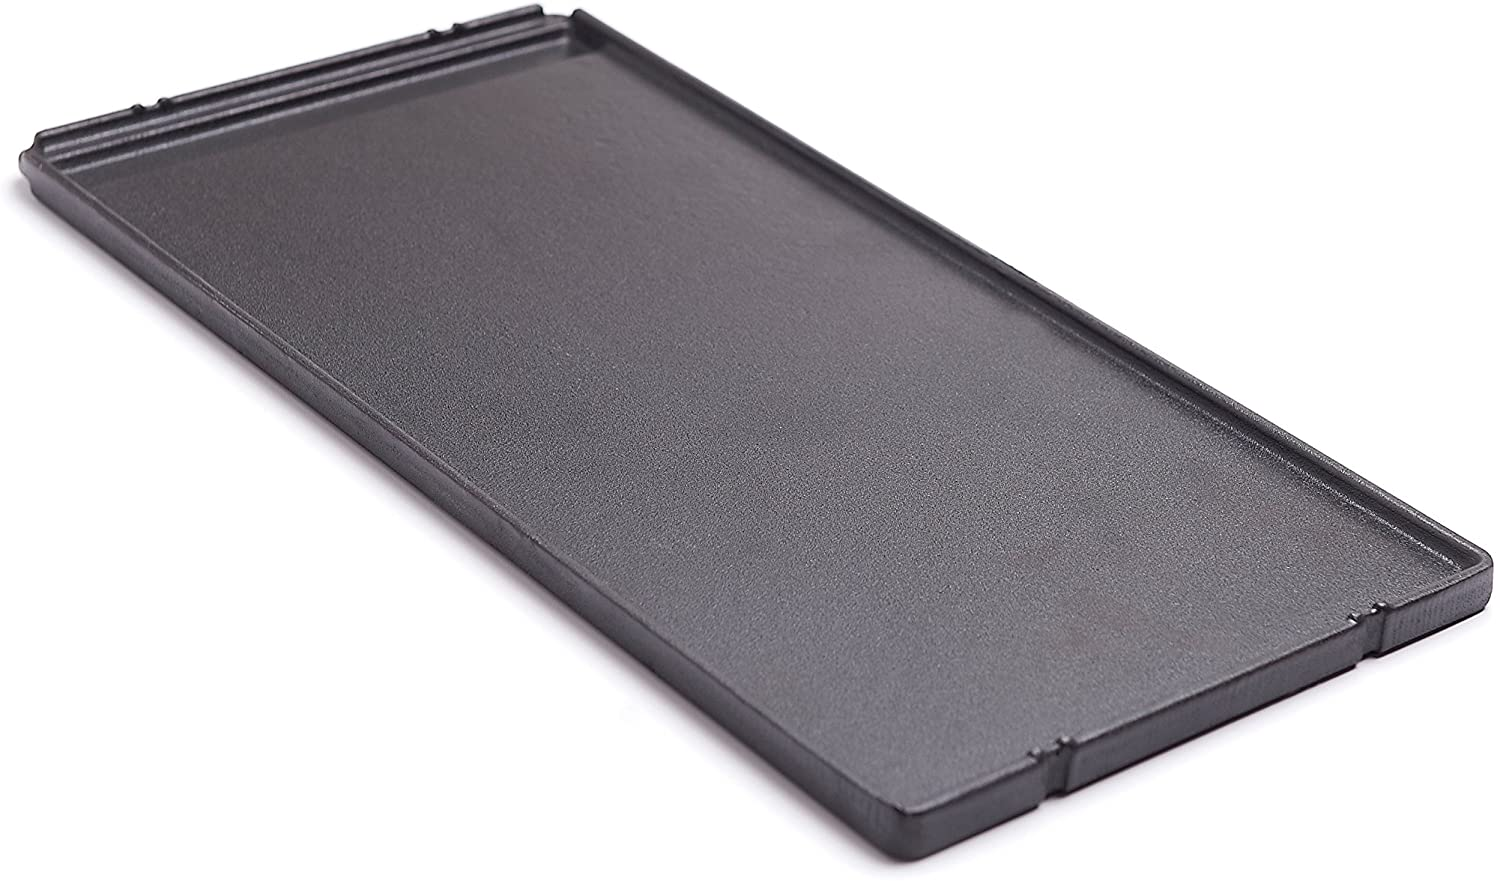 Broil King 11220 Exact Fit Cast Iron Griddle for the Broil King Sovereign Series Gas Grill